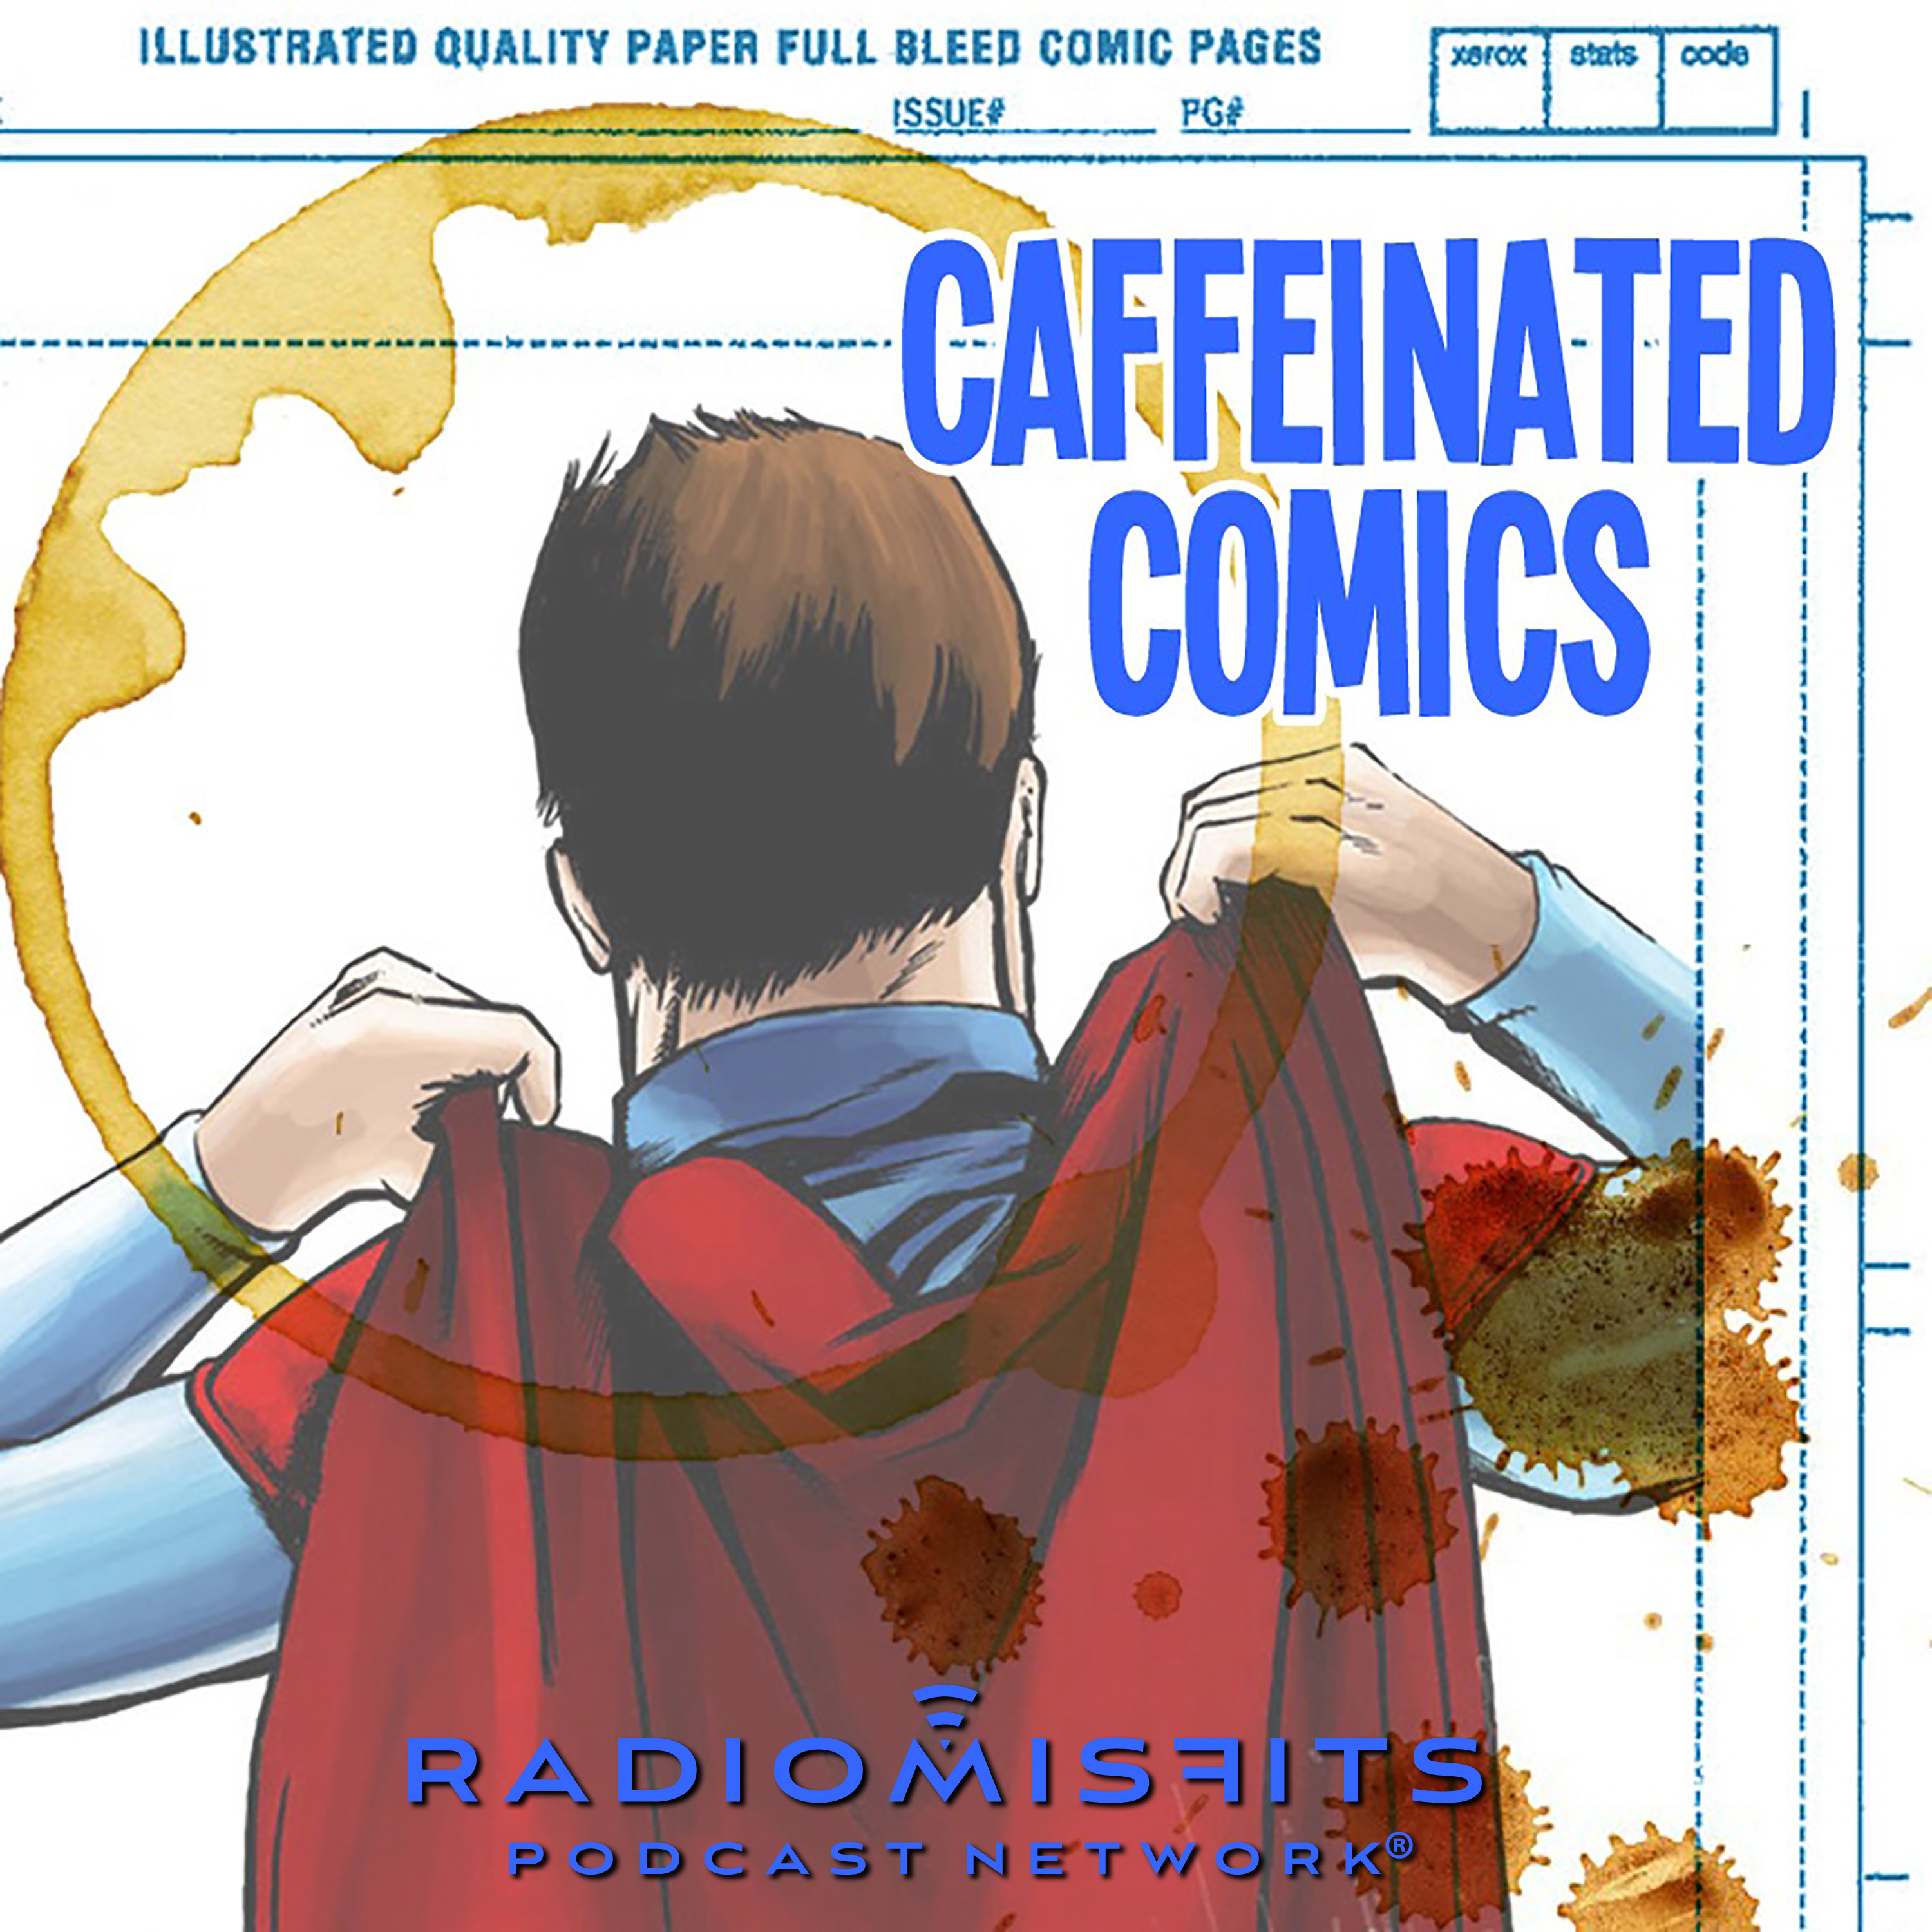 Caffeinated Comics on Radio Misfits